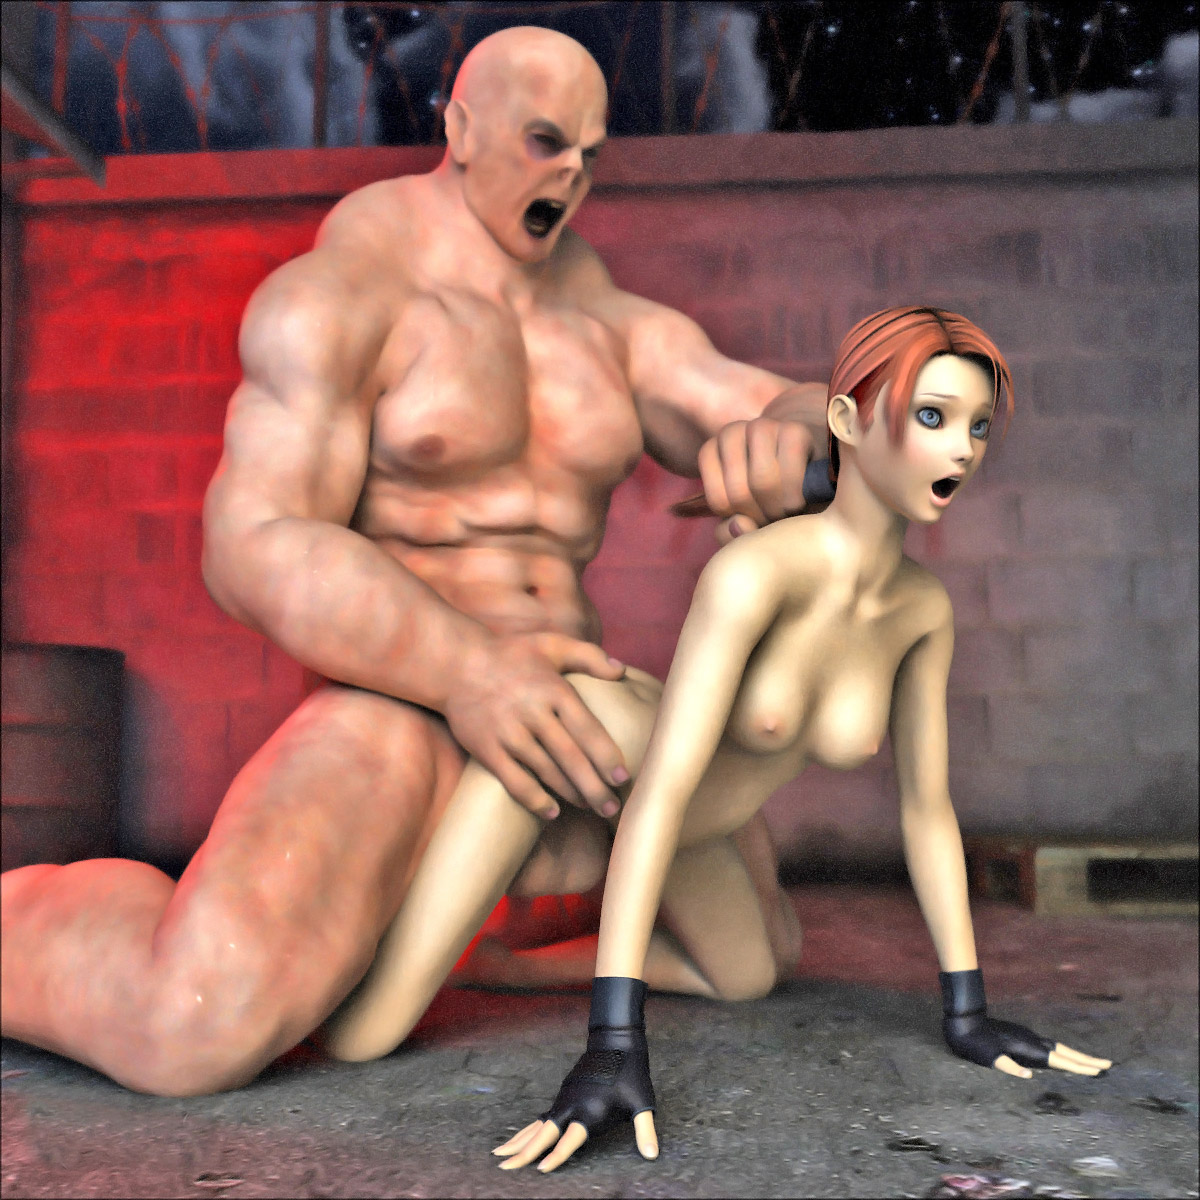 Image tomb raider monster porn porn beauty sexgirls